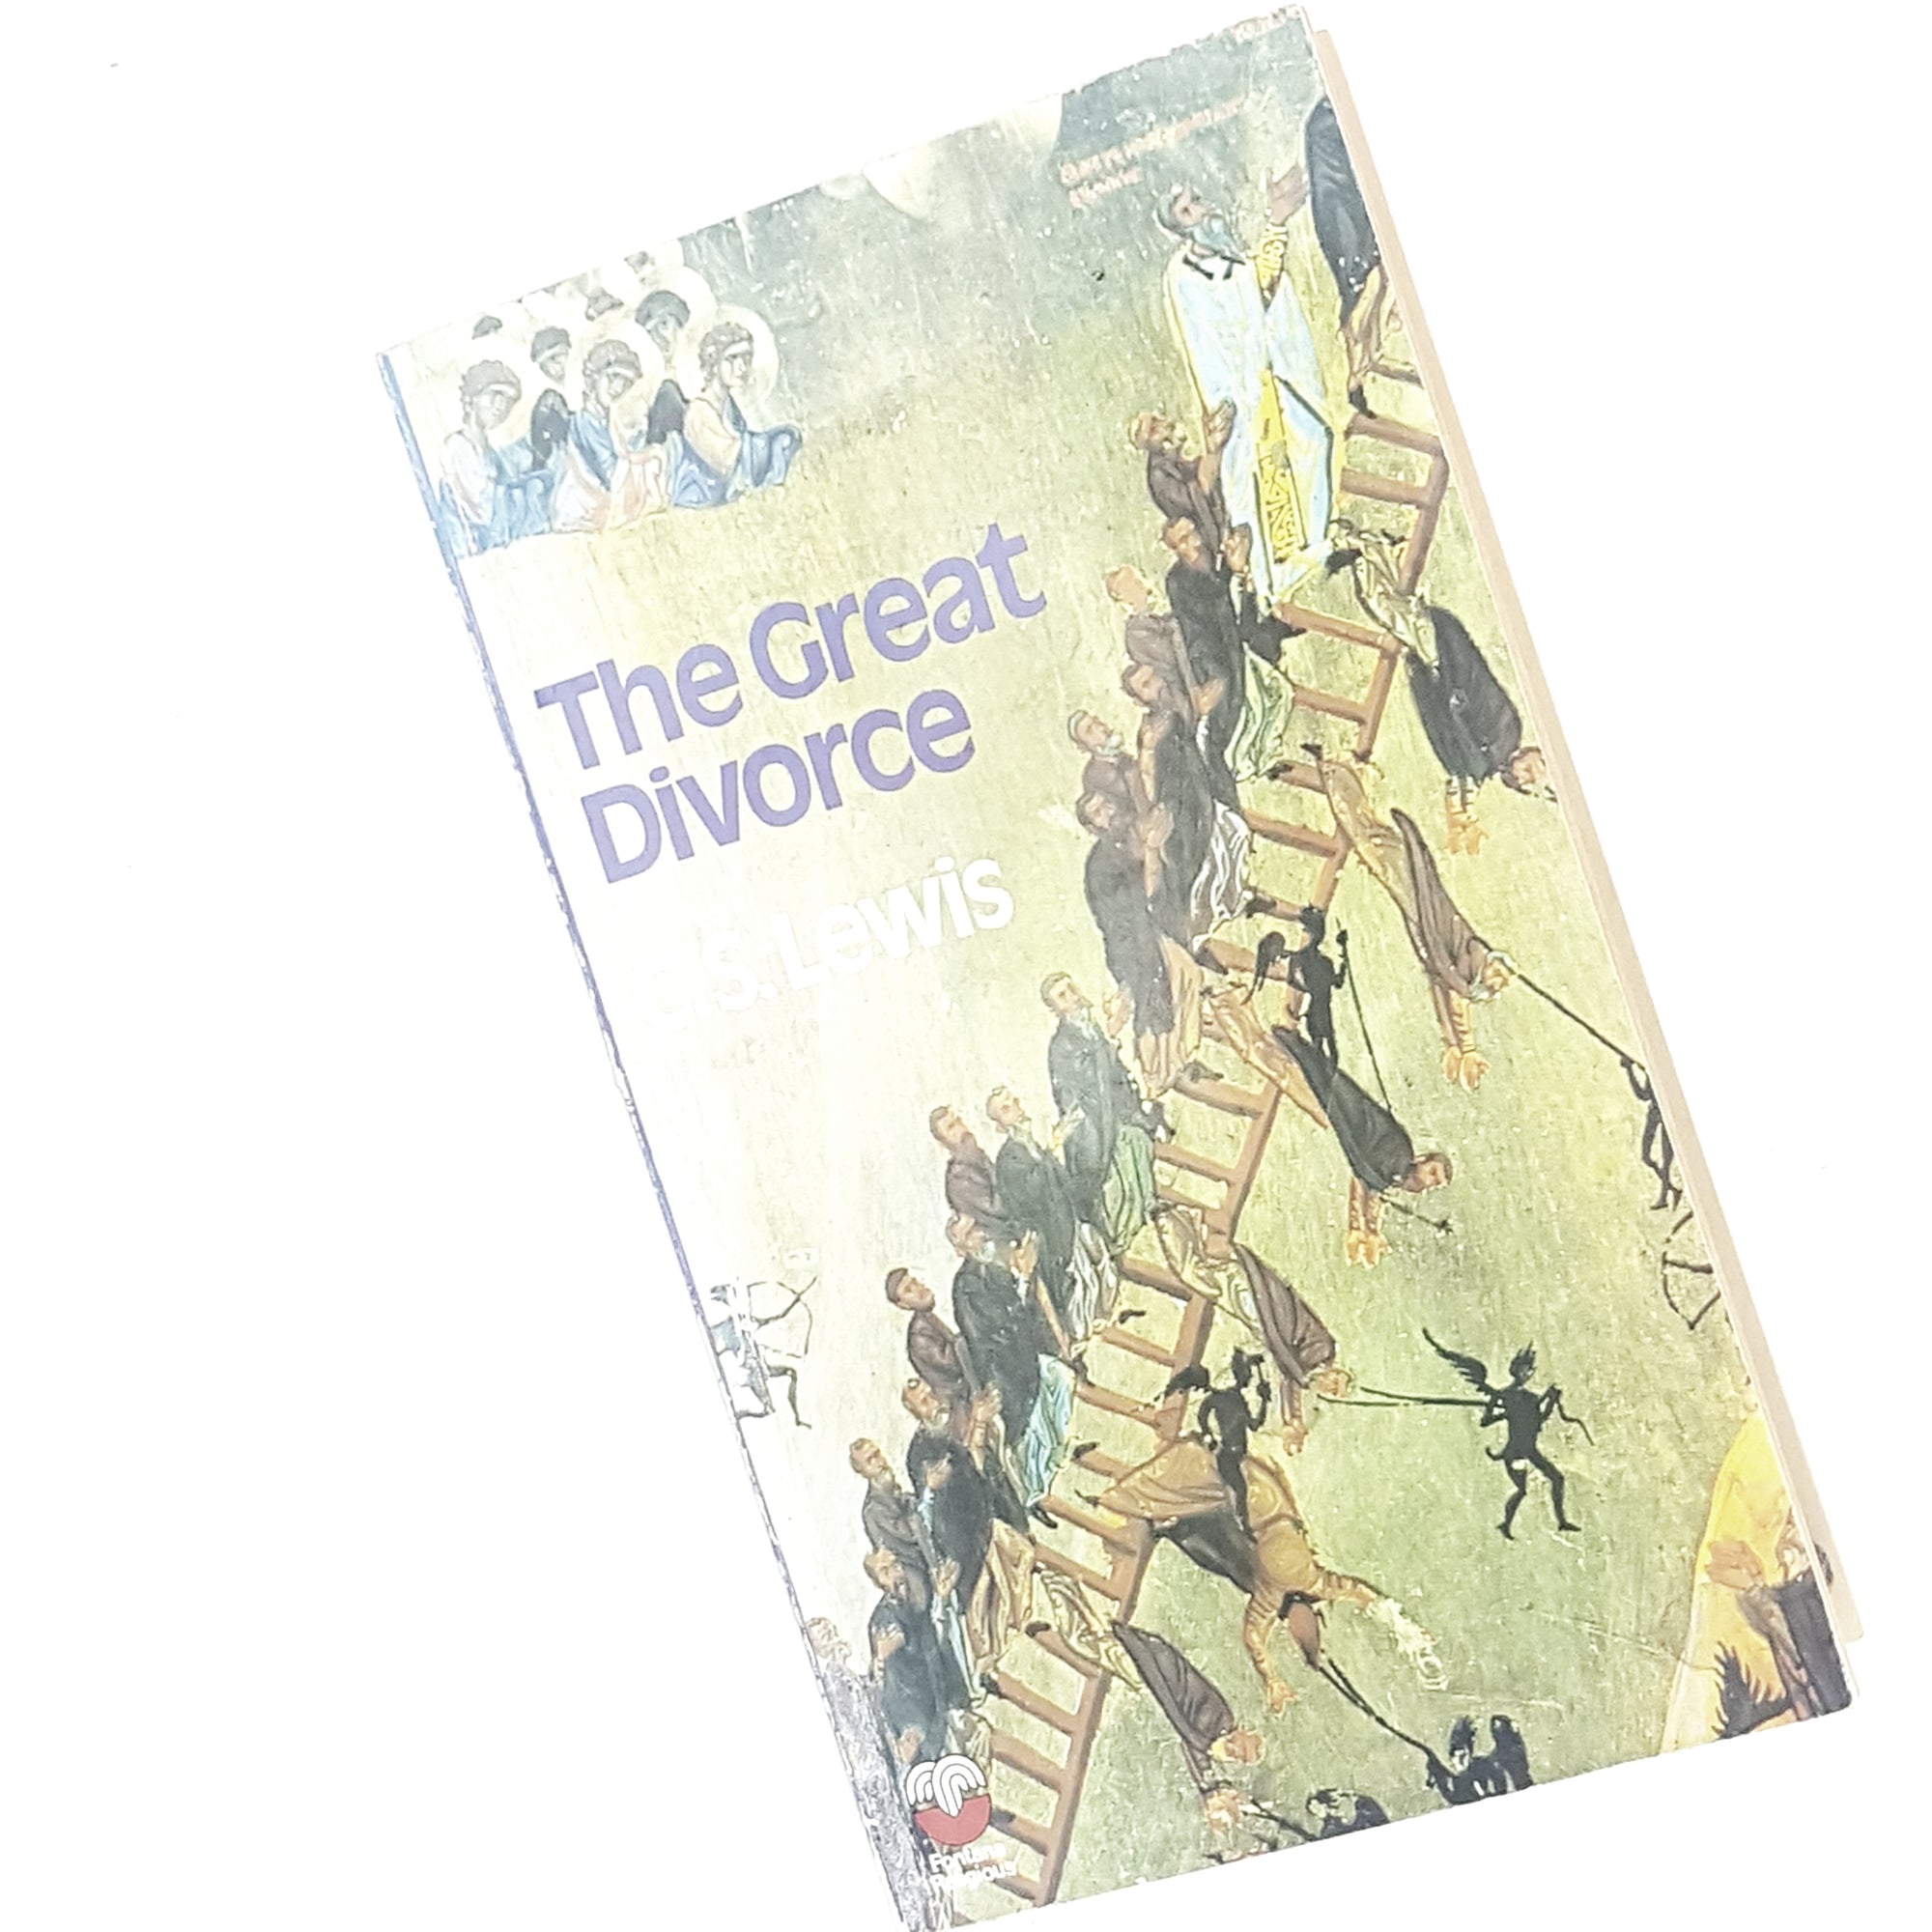 C. S. Lewis's The Great Divorce